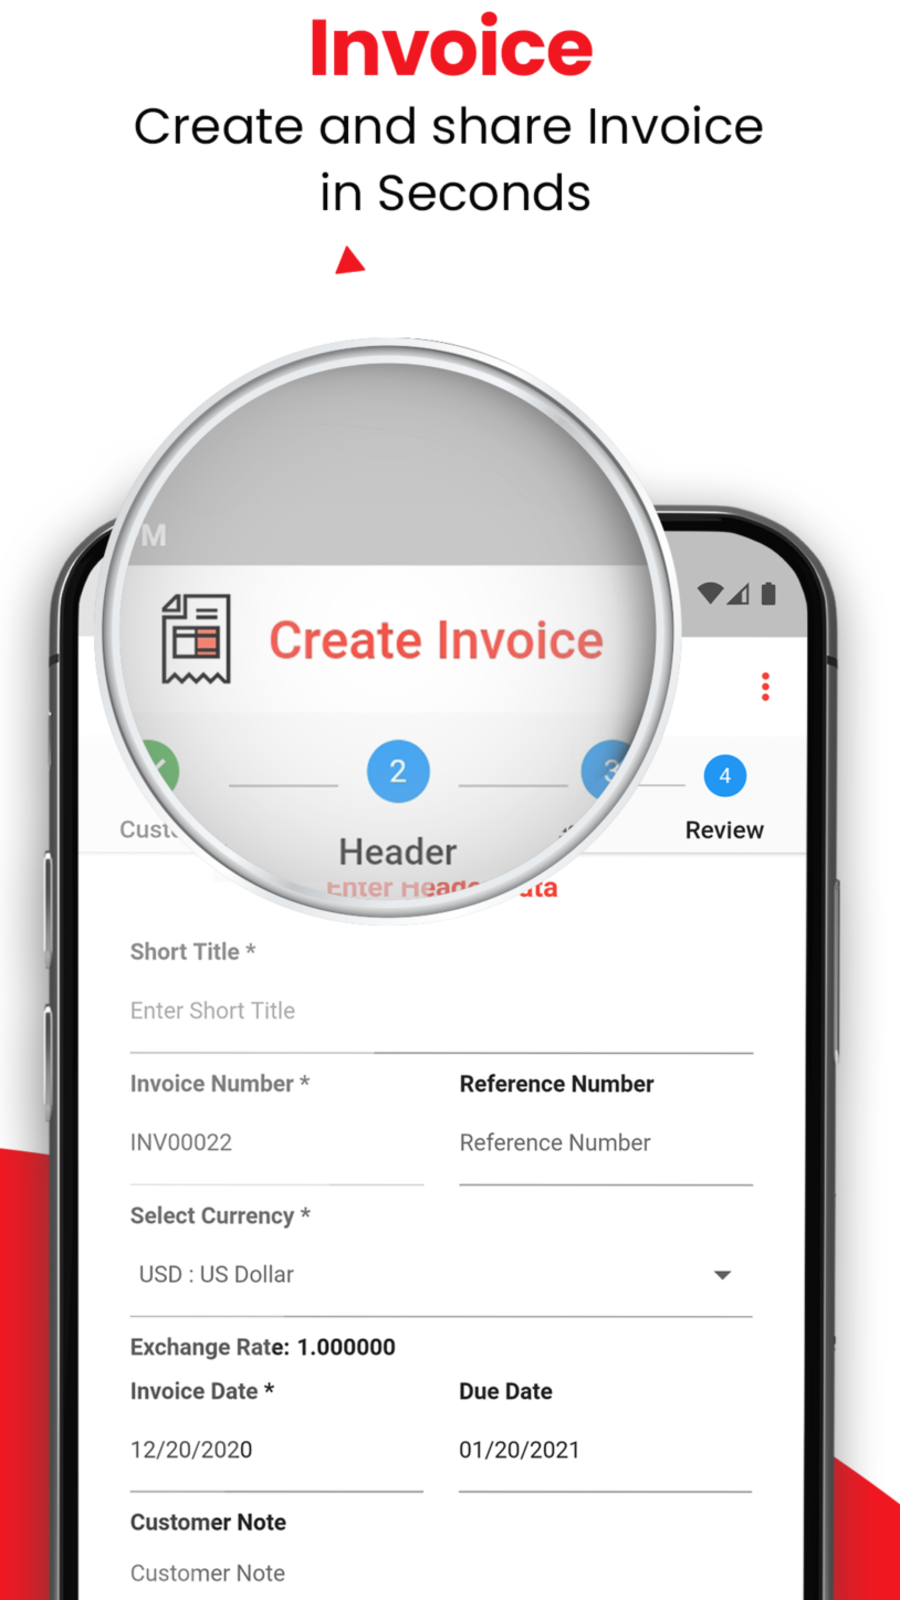 Create and share Invoices in seconds